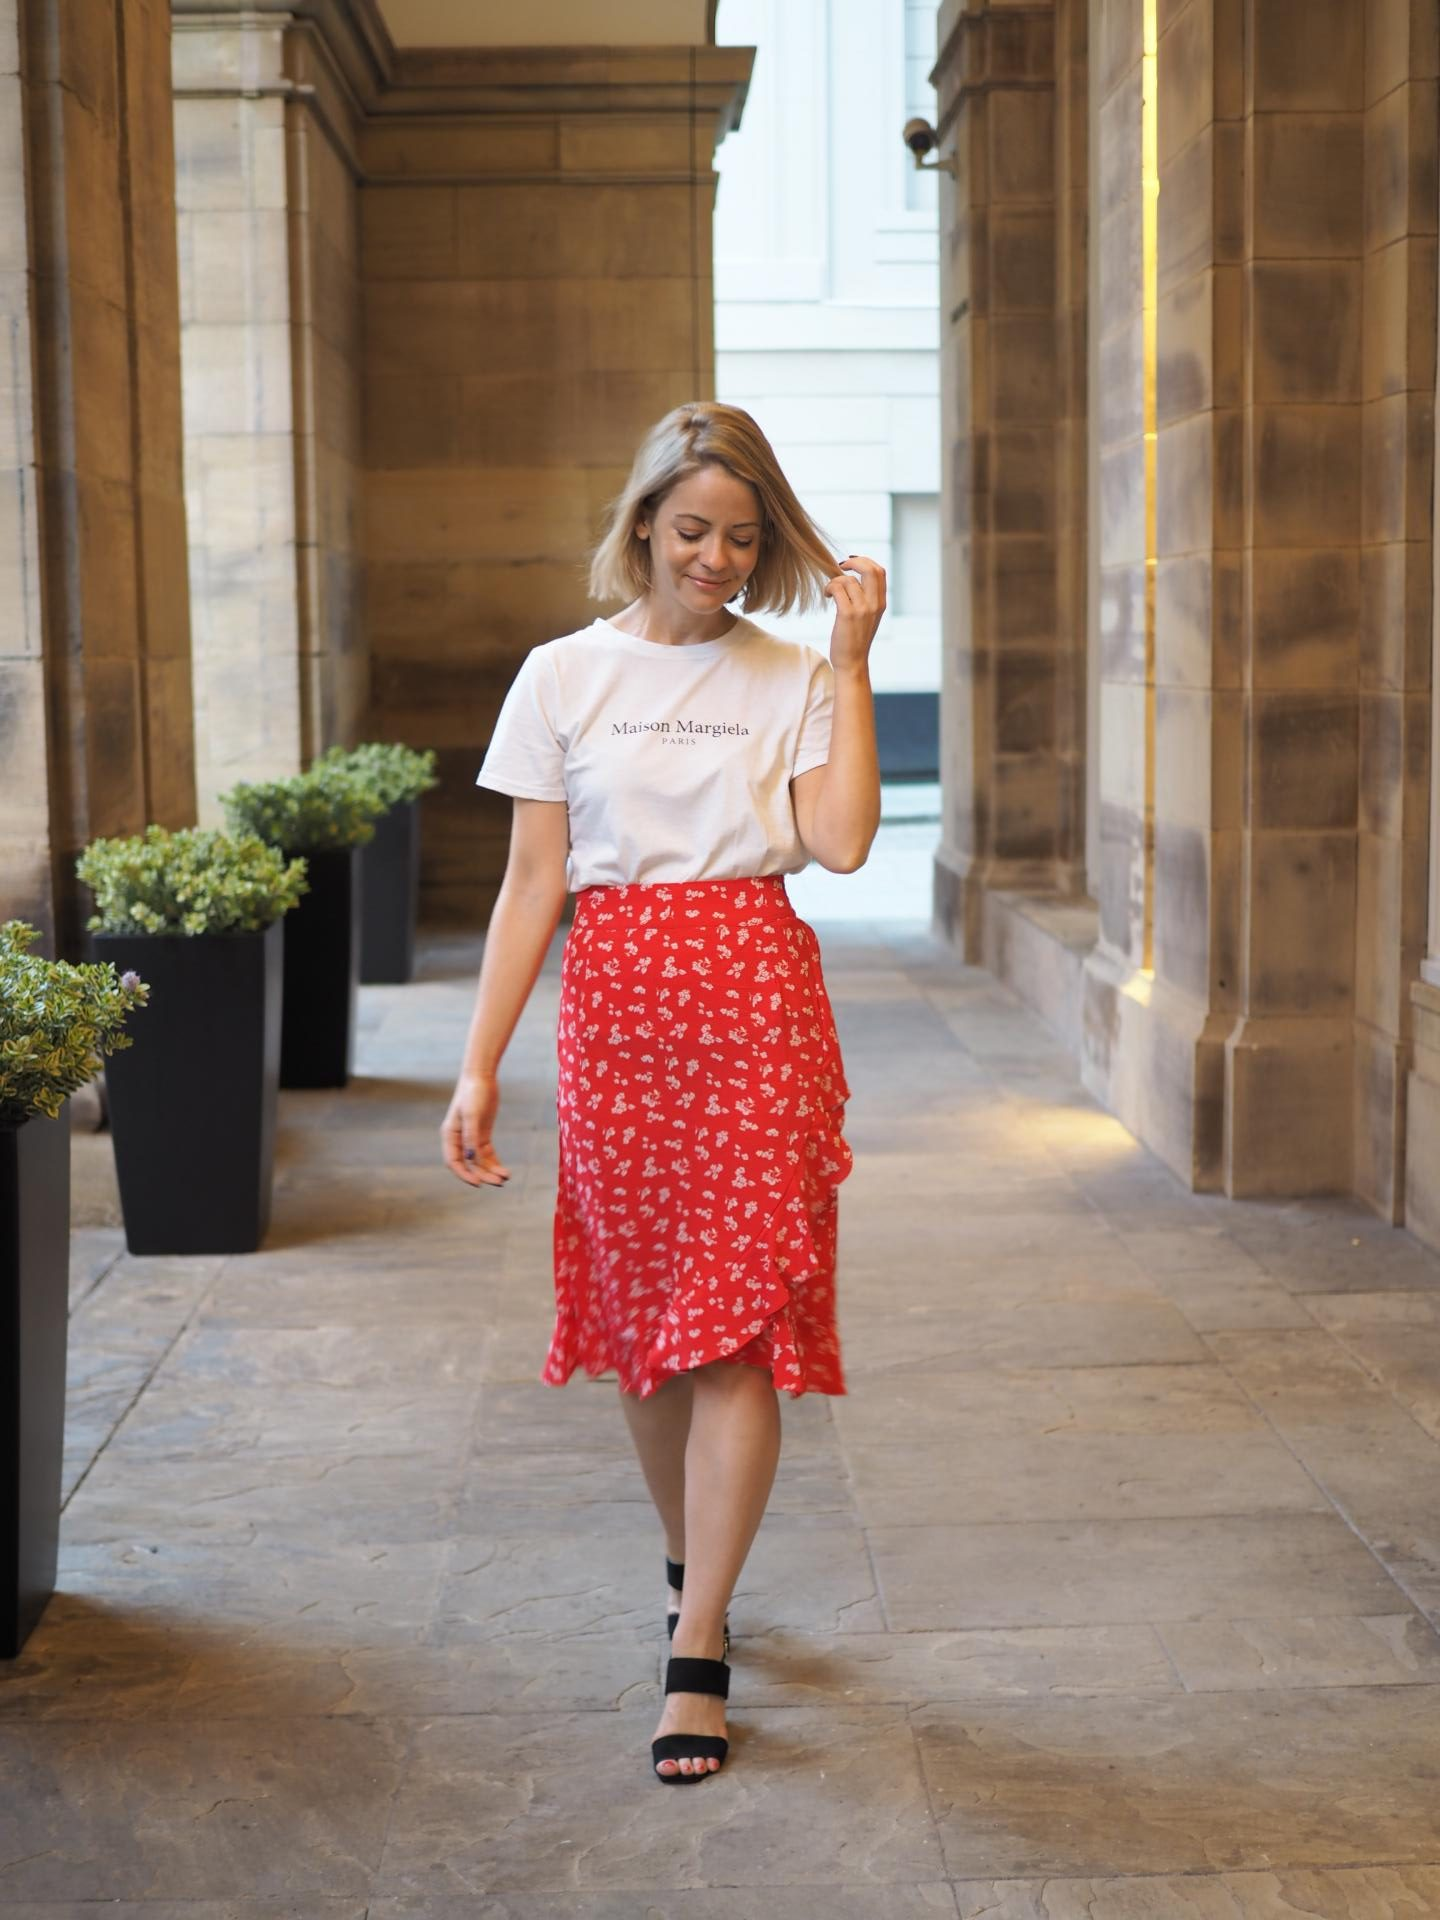 A Weekend in Manchester With Lookfantastic